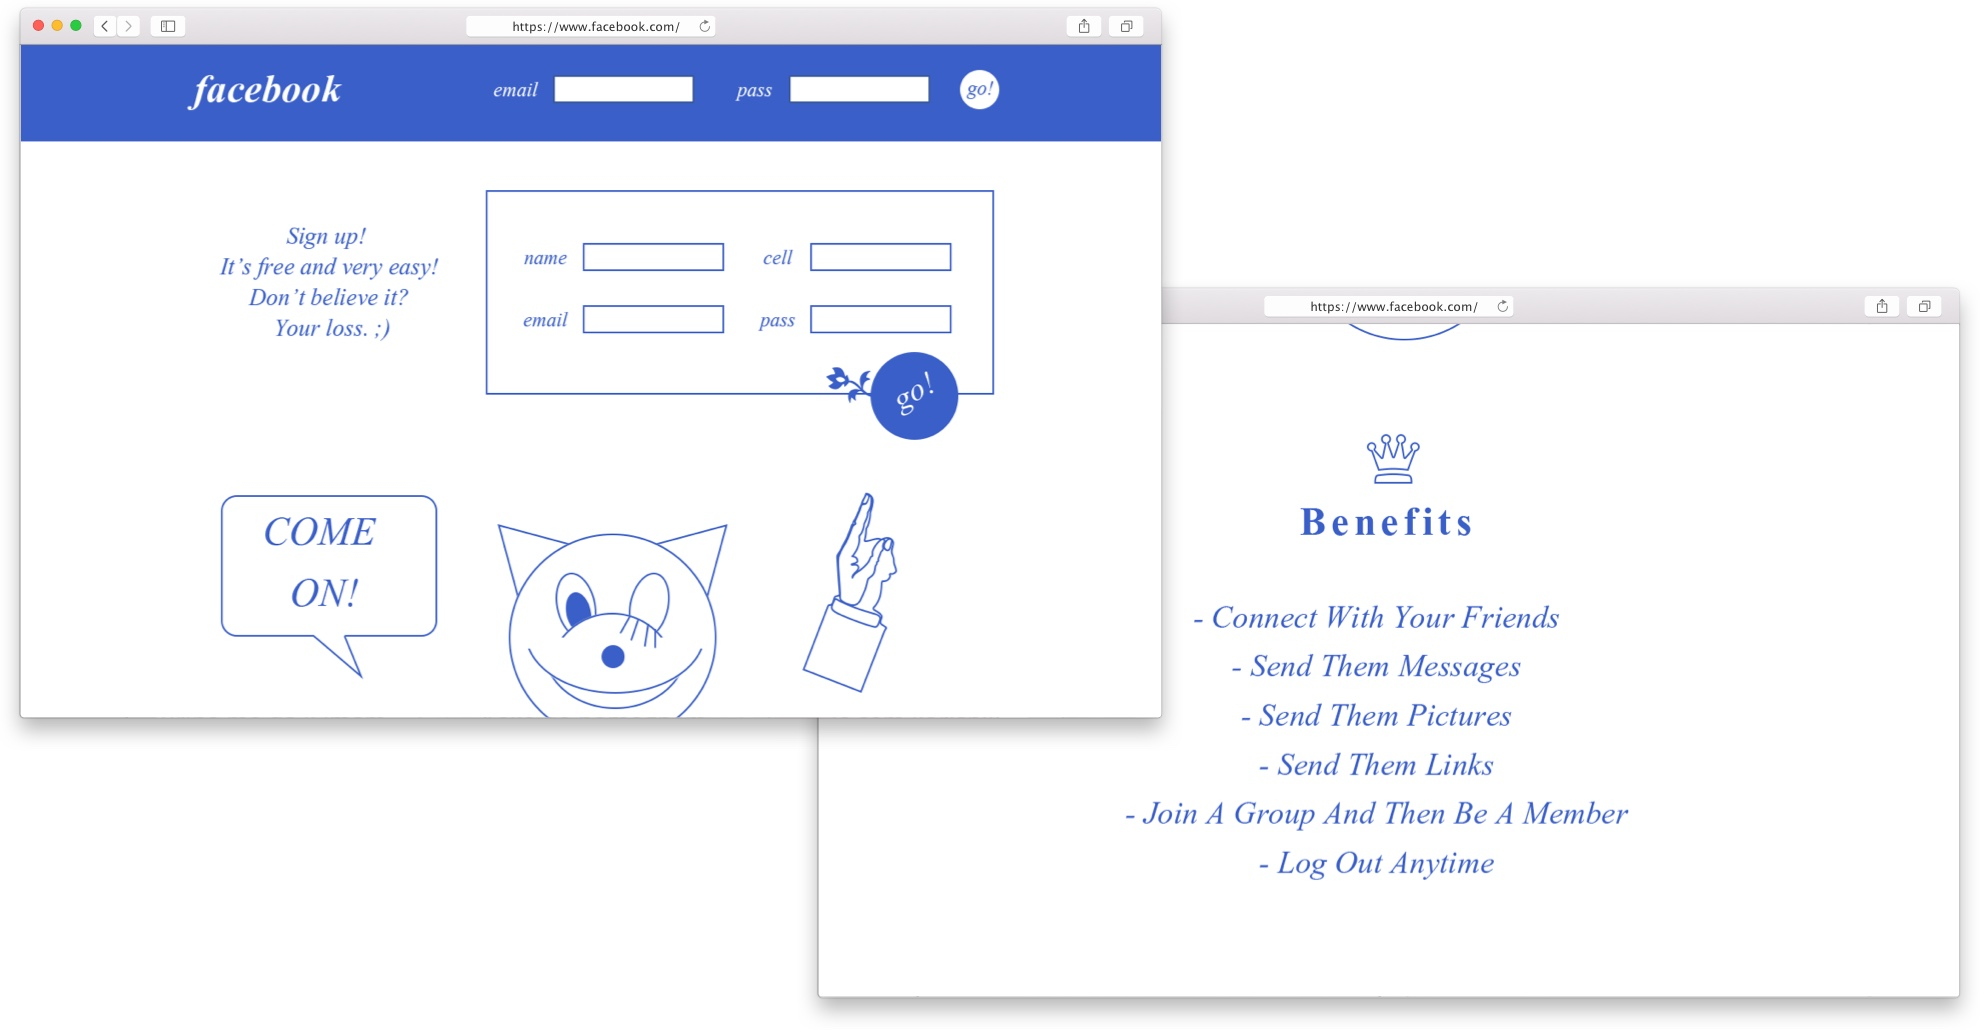 My Facebook landing page redesign (rejected 😏)